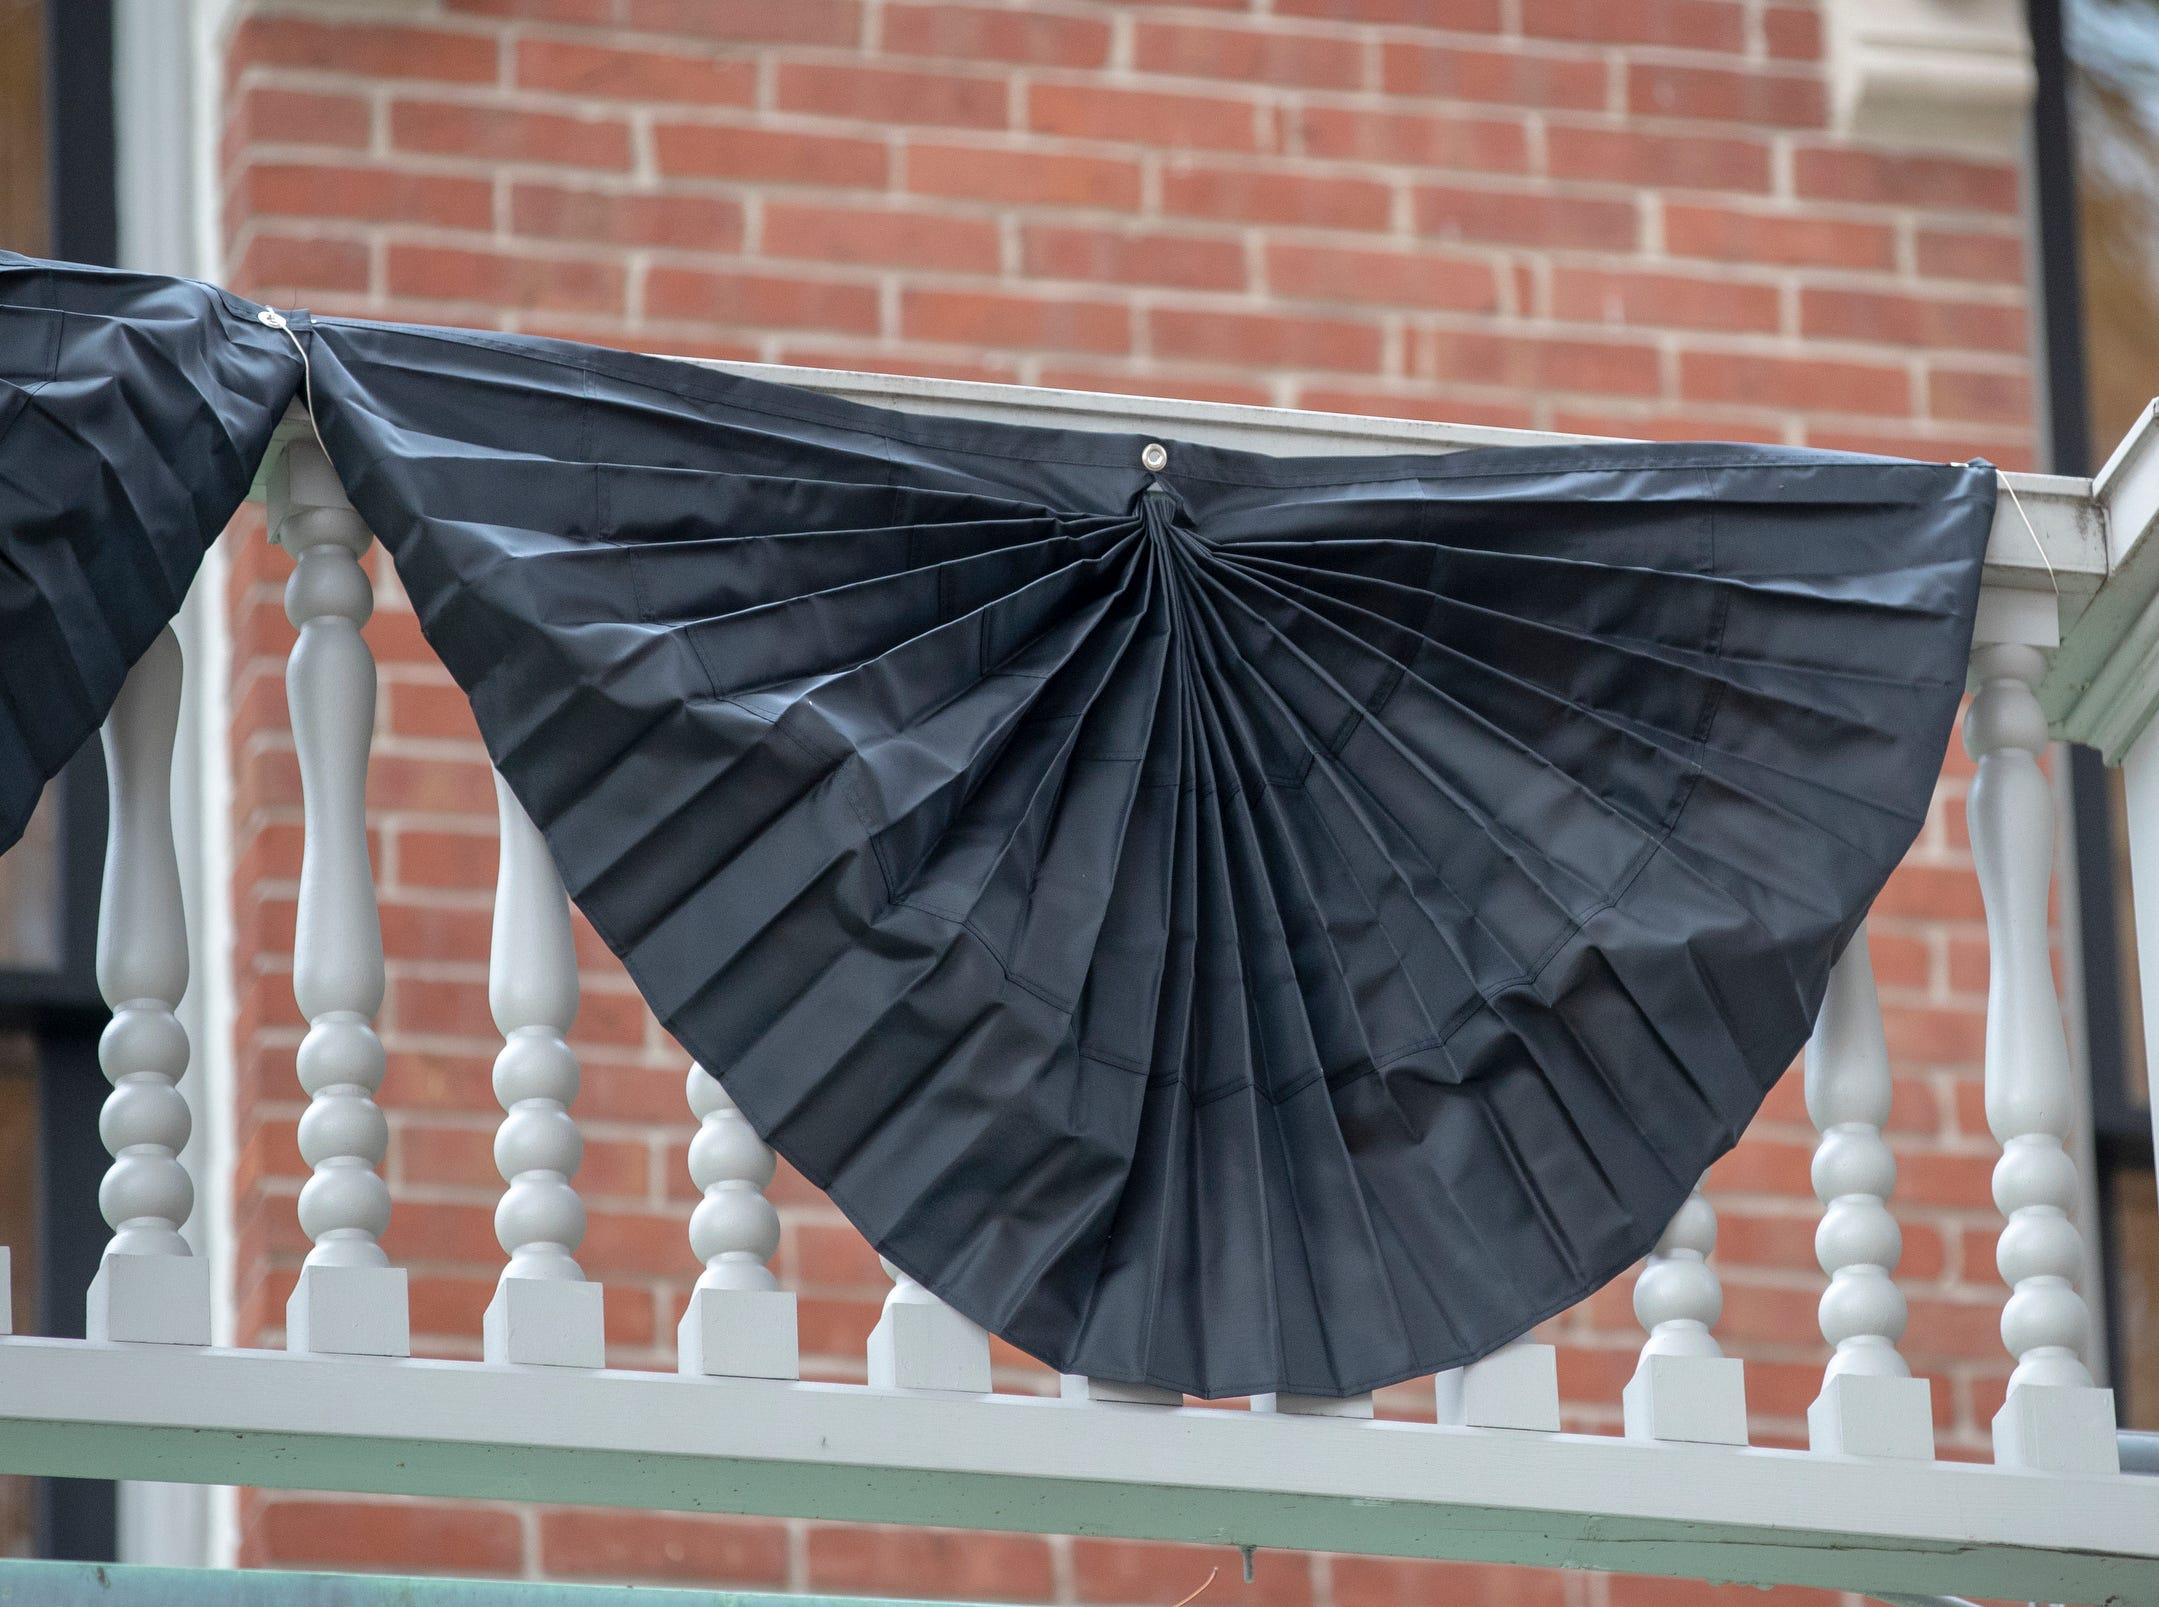 Mourning bunting at the Benjamin Harrison Presidential Site, Indianapolis, Sunday, Dec. 2, 2018. This display on the railings, and a half-mast flag, pay respects to George H. W. Bush, the 41st President, who died on Friday evening in Houston.